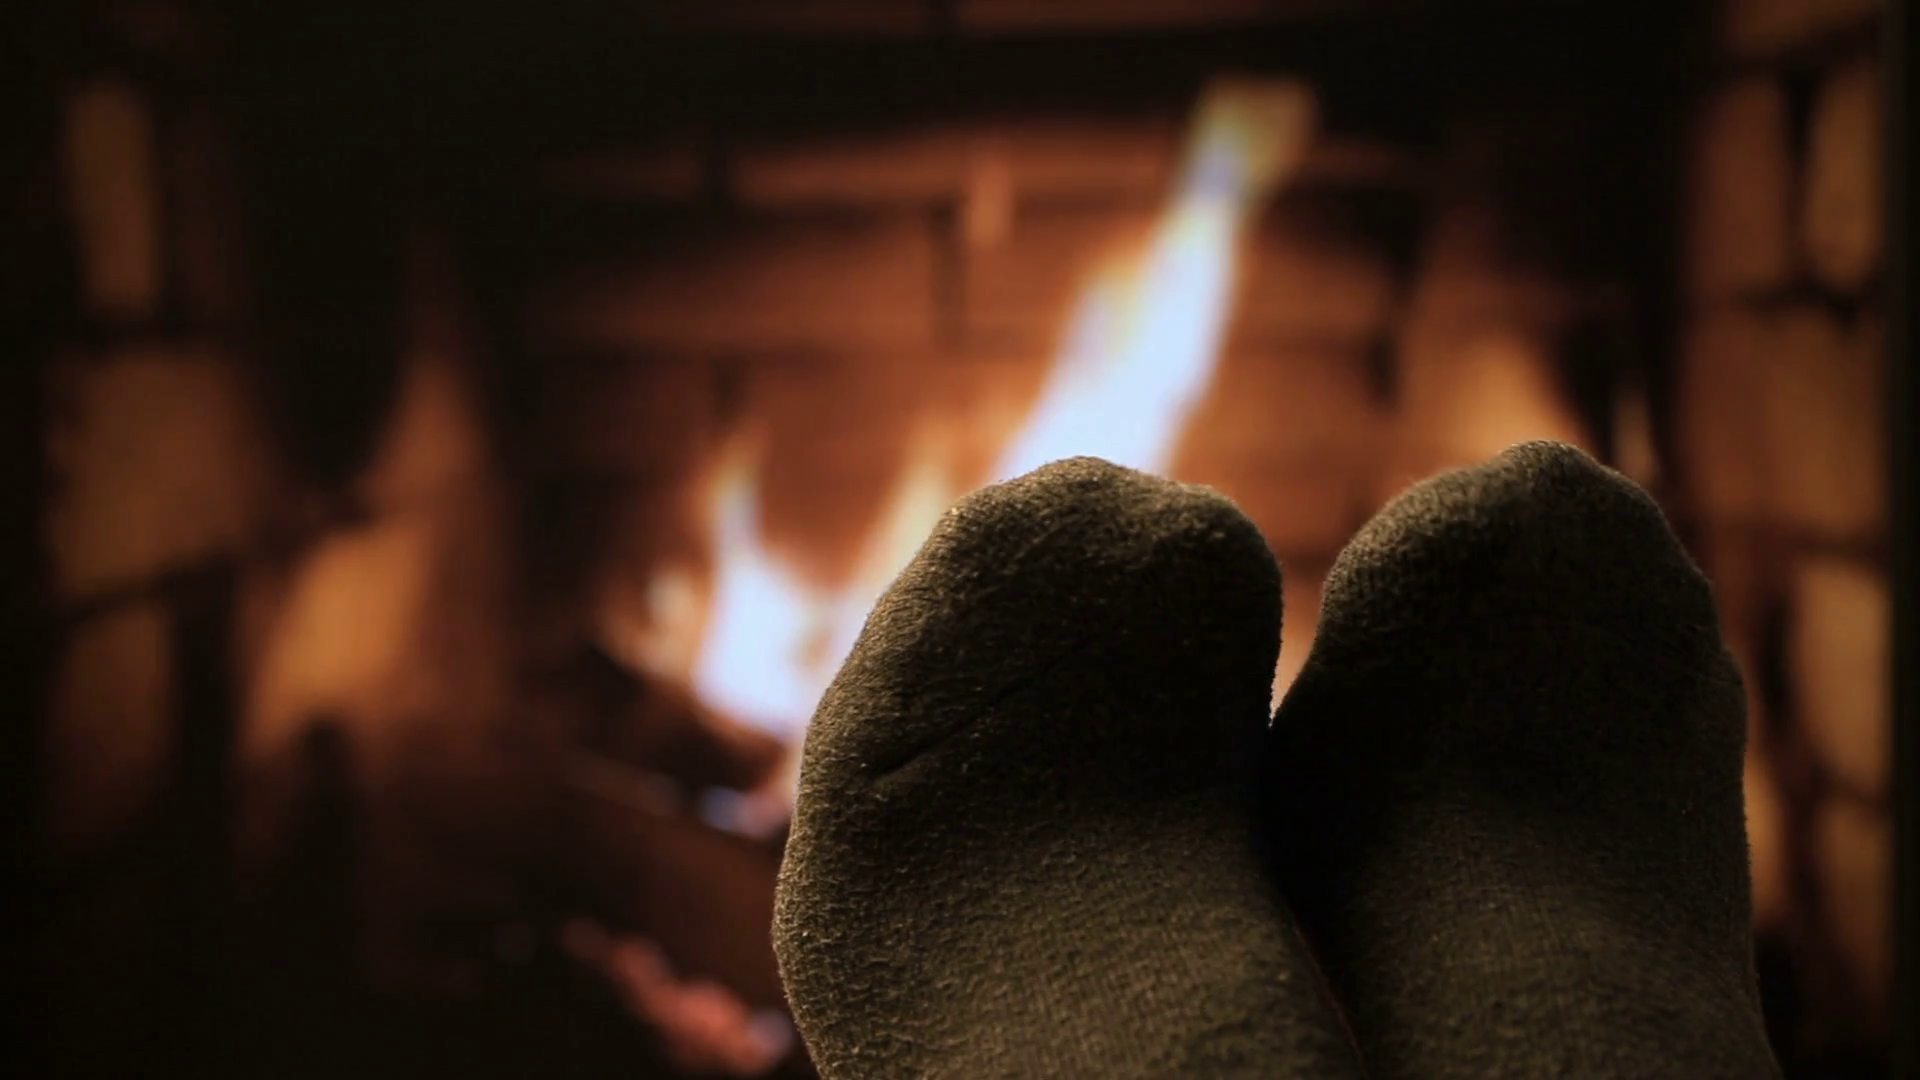 feet-in-woollen-socks-by-the-fireplace_h8nv-g48l_thumbnail-full01.png